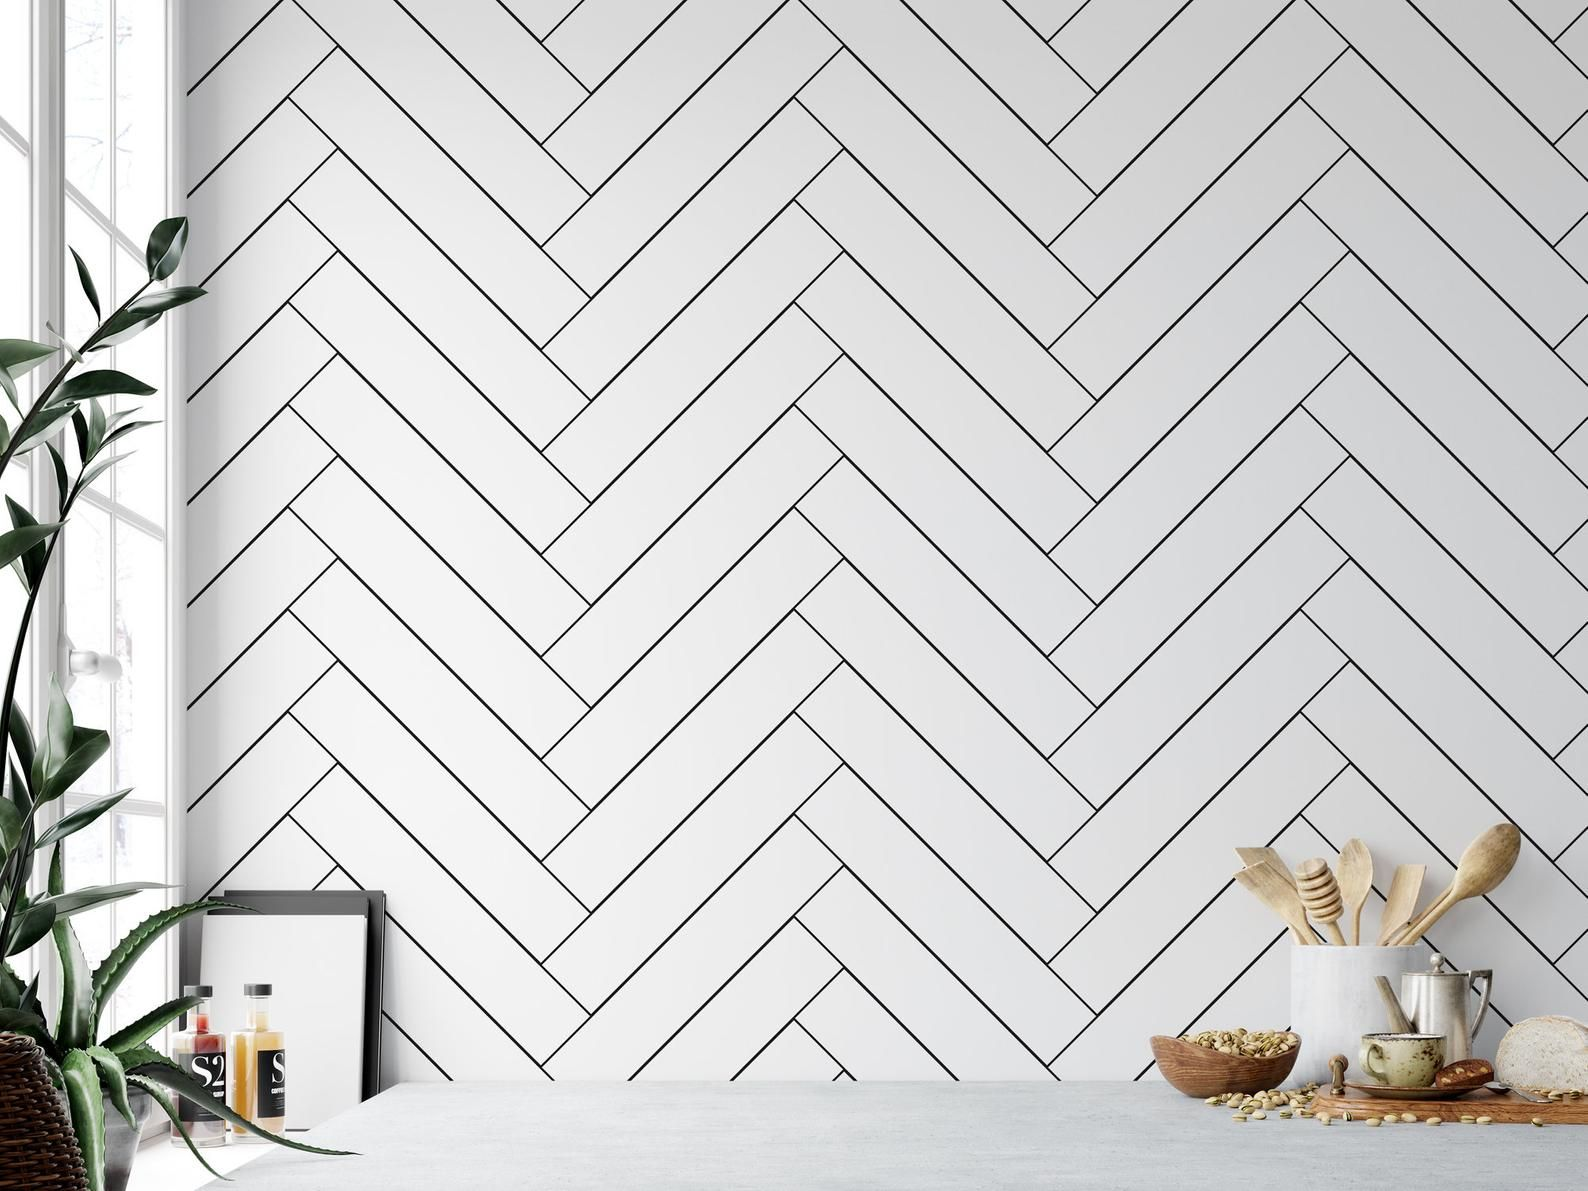 Black And White Herringbone Temporary Wallpaper Peel And Stick Self Adhesive Reusable Wall Mural Nursery Room Decor Accent Wall Mw1206 In 2021 Temporary Wallpaper Washable Wallpaper Peel And Stick Wallpaper